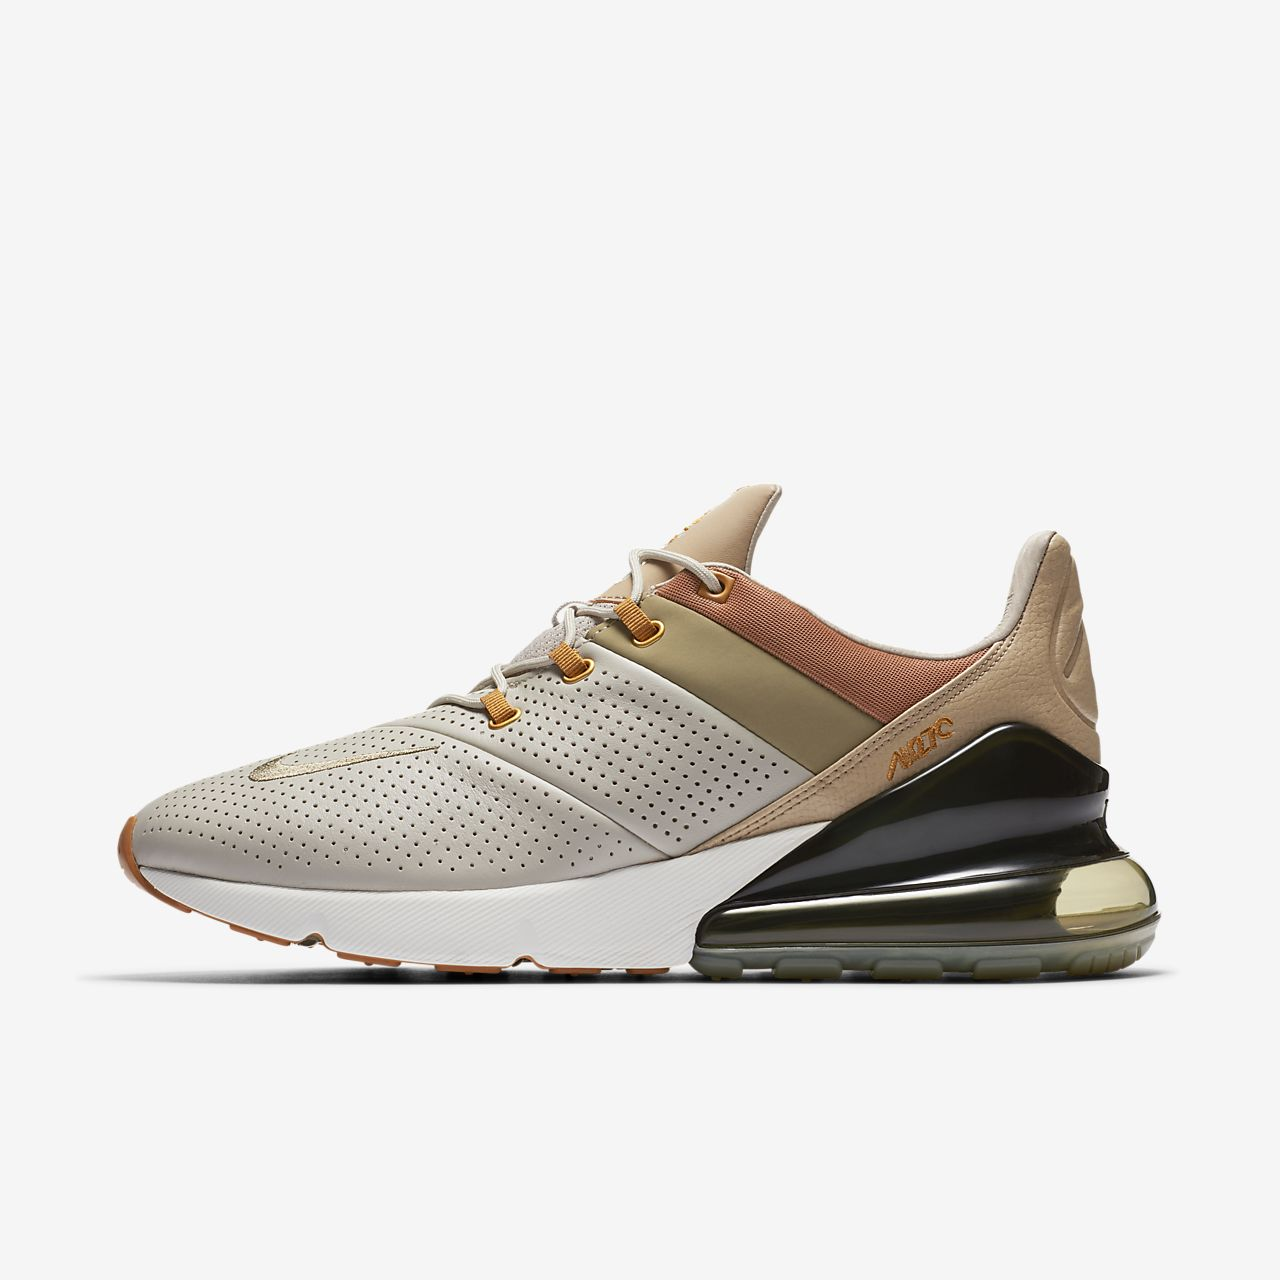 new arrival 3e4d6 14c47 Men s Shoe. Nike Air Max 270 Premium